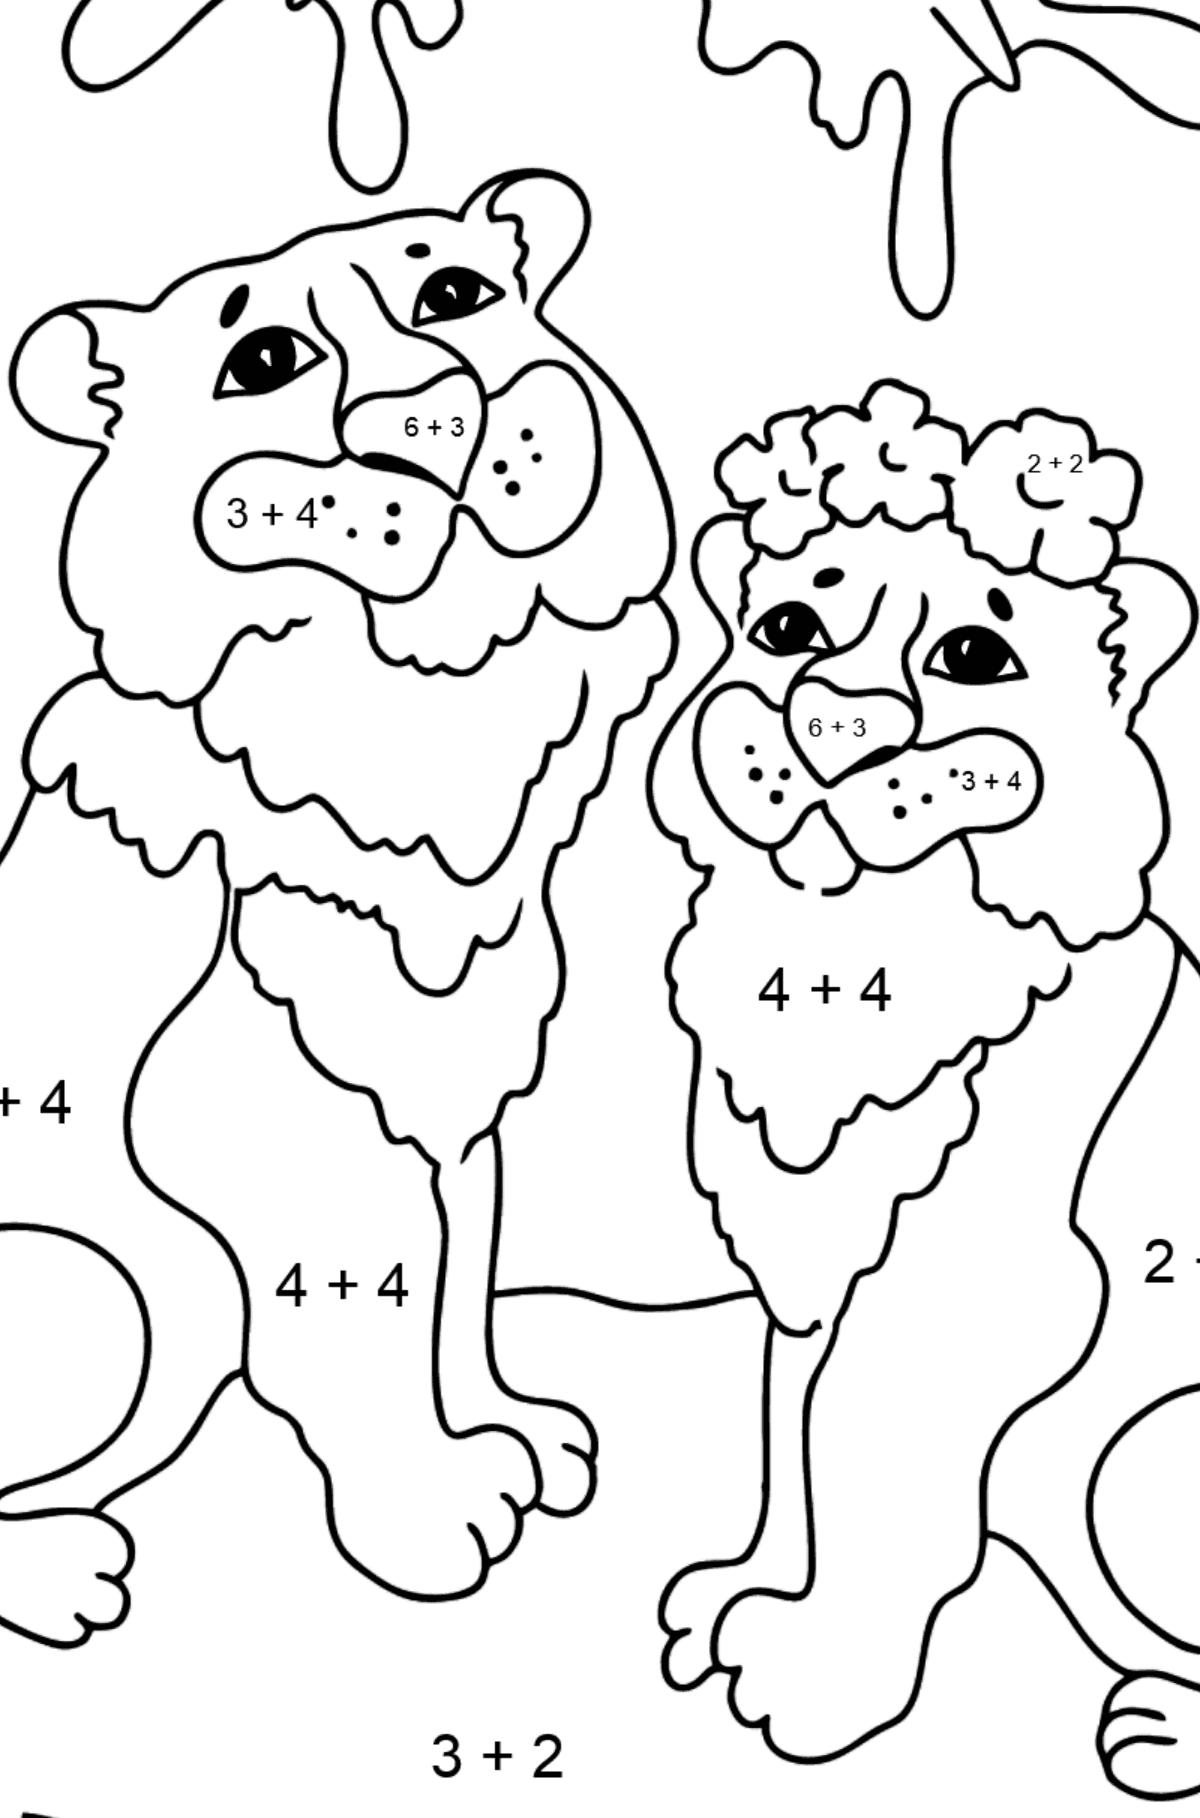 Coloring Page - A Tiger with a Tigress - Math Coloring - Addition for Kids